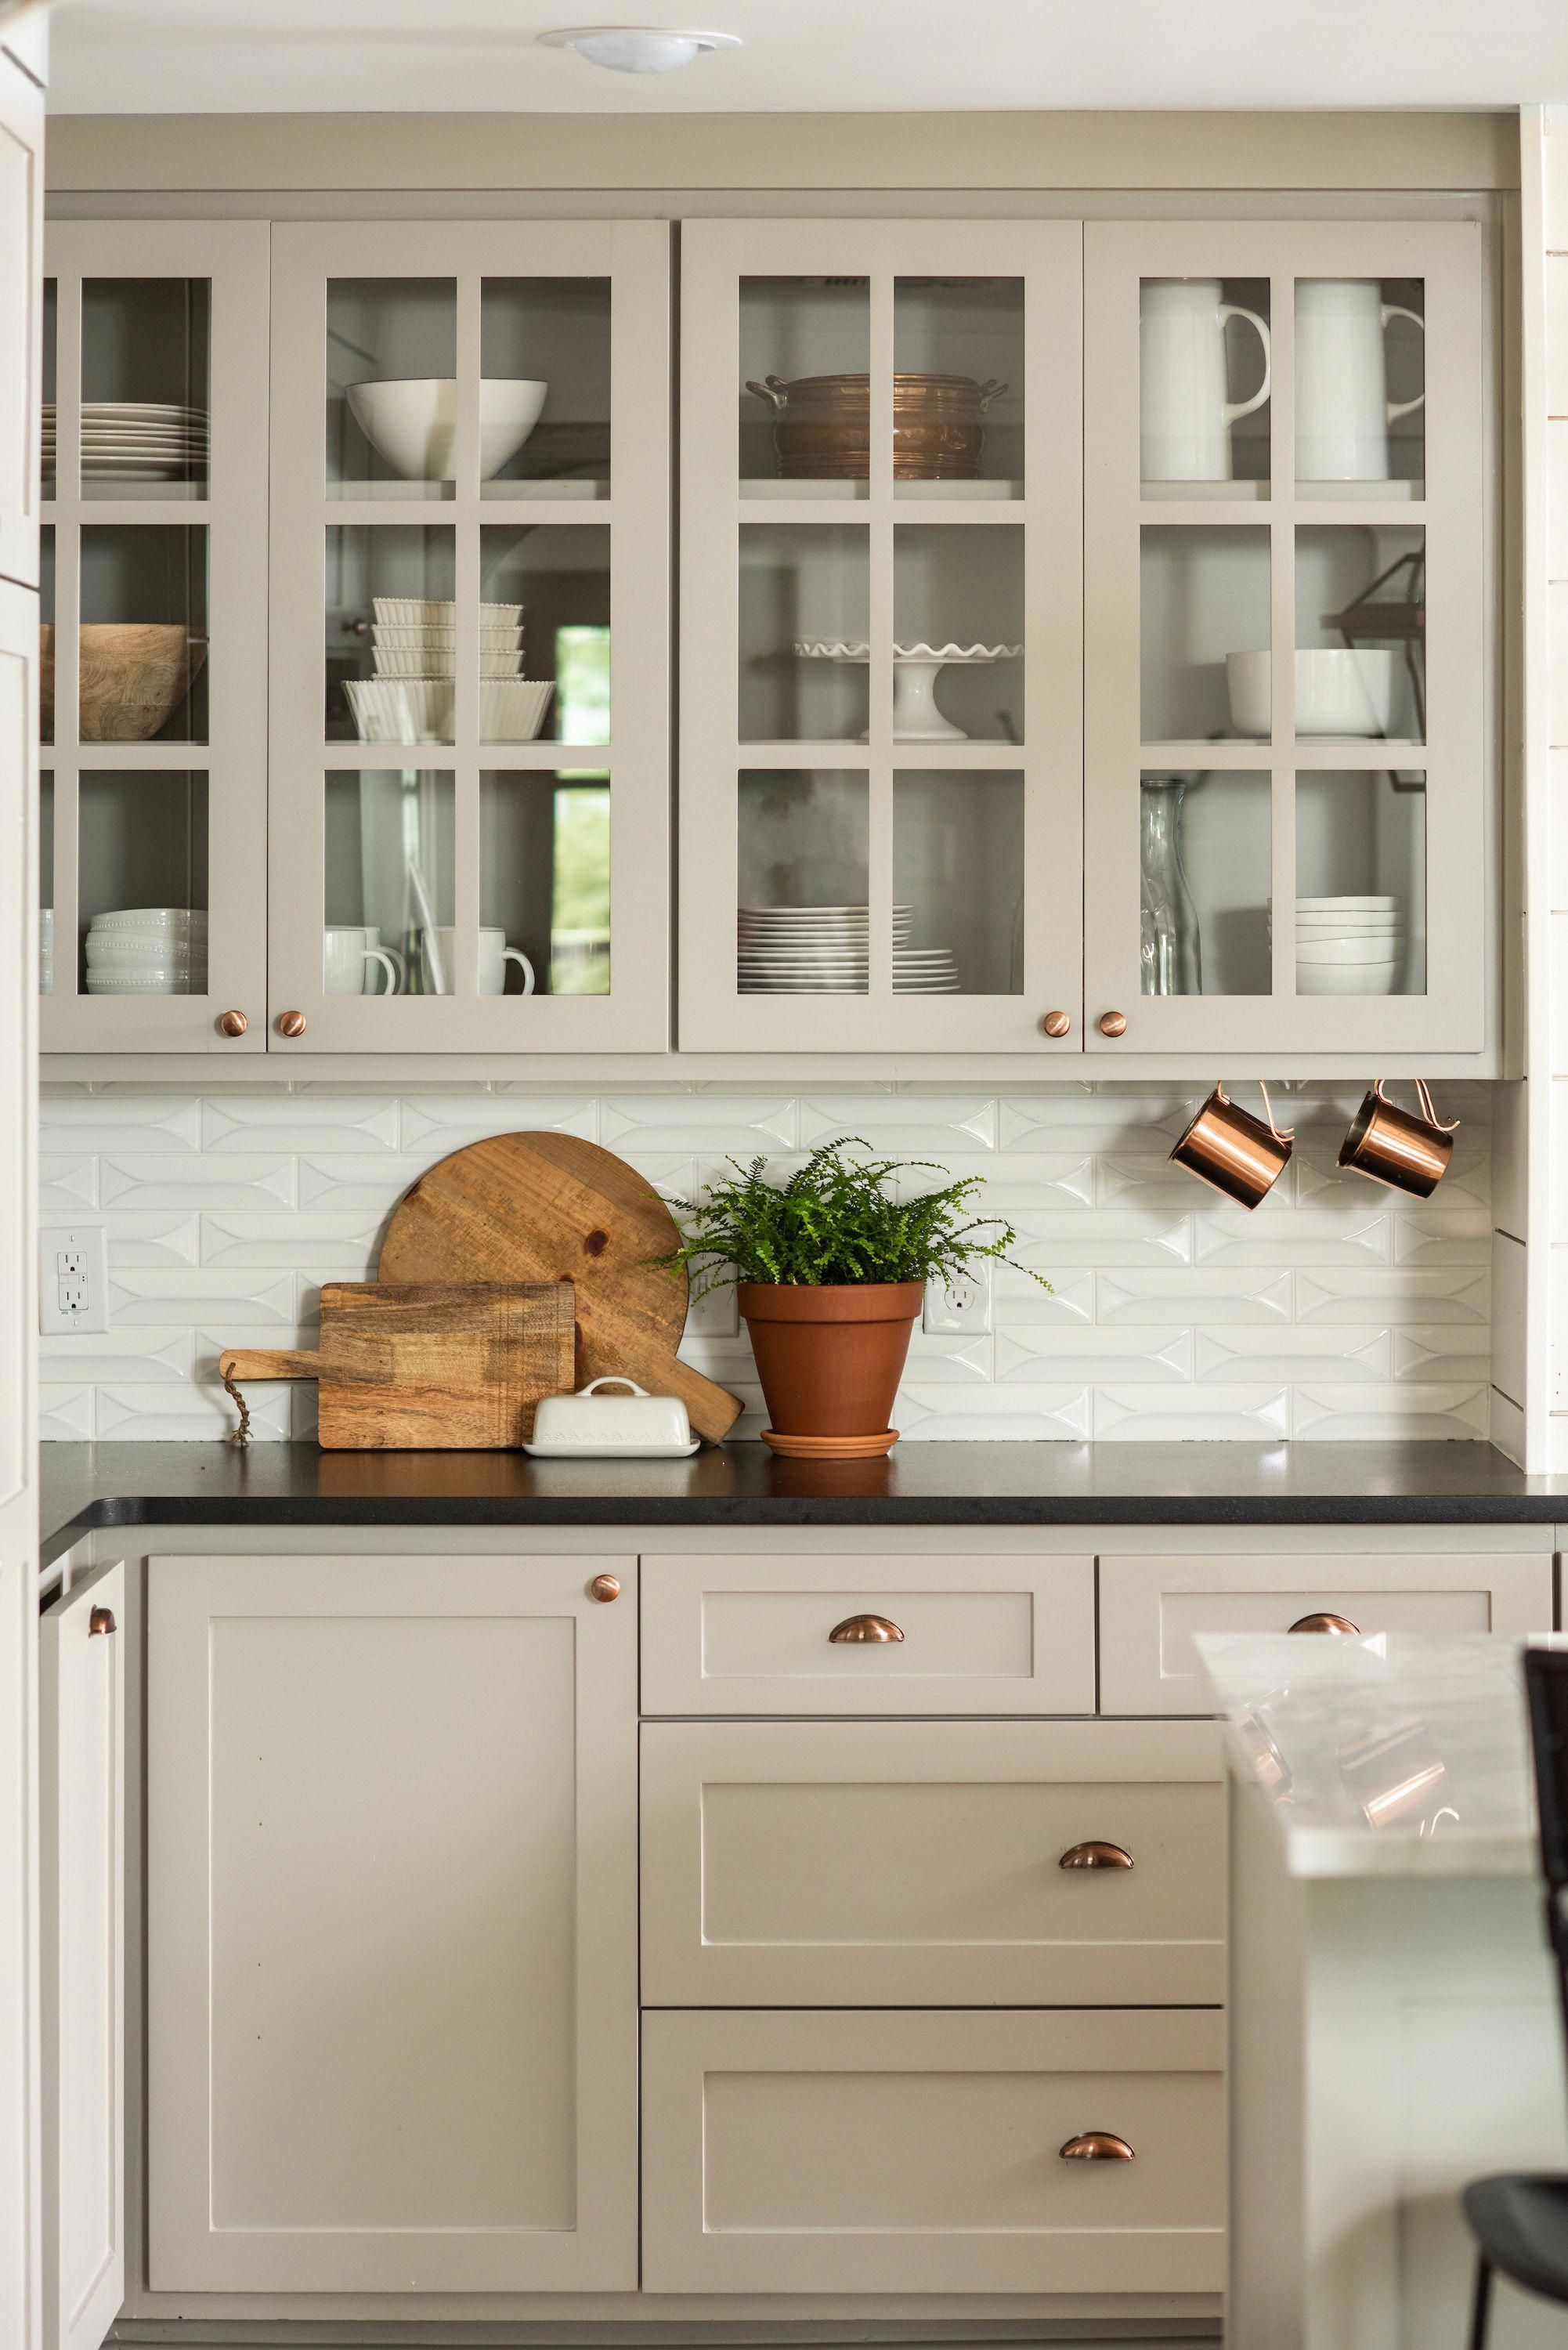 Carriage House In 2020 Kitchen Renovation Kitchen Inspirations Kitchen Remodel